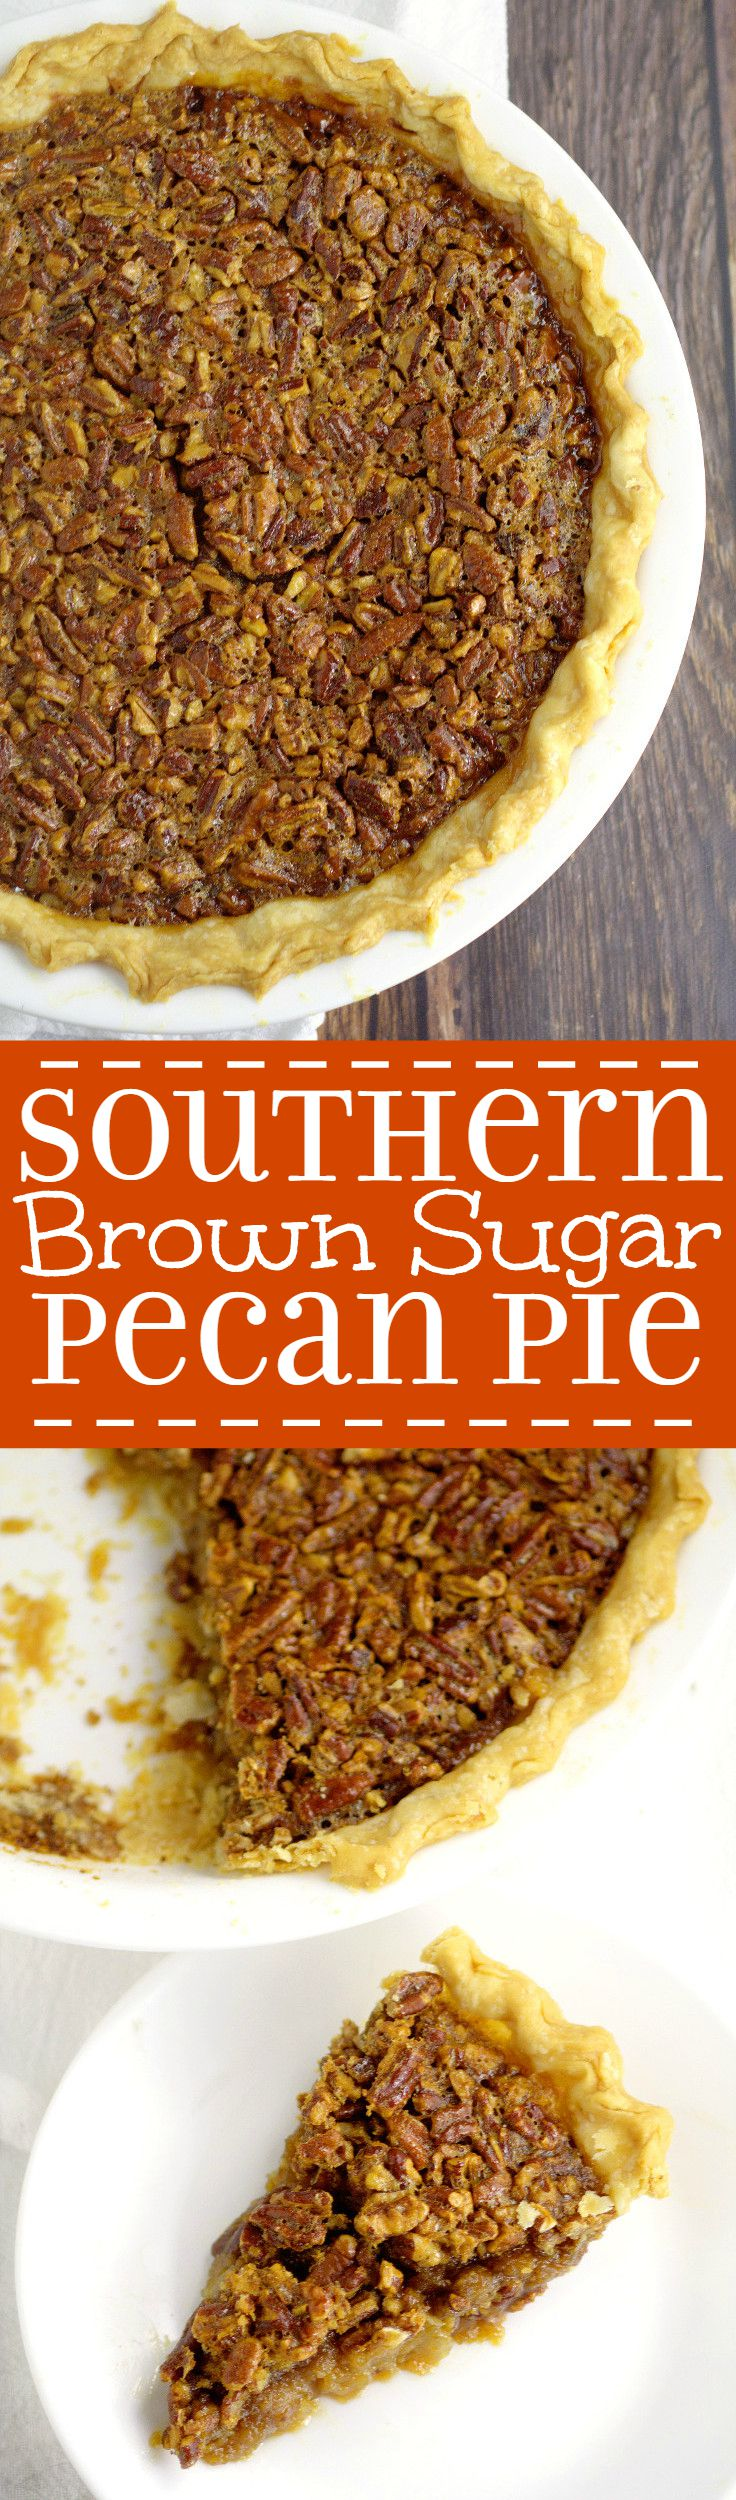 Southern Brown Sugar Pecan Pie- A super simple but absolutely delicious Southern Pecan Pie recipe. I make these for the holidays every year, and they are amazing! A gooey, caramel-like filling is topped with crunchy pecans, all in a perfect, flaky pie crust.